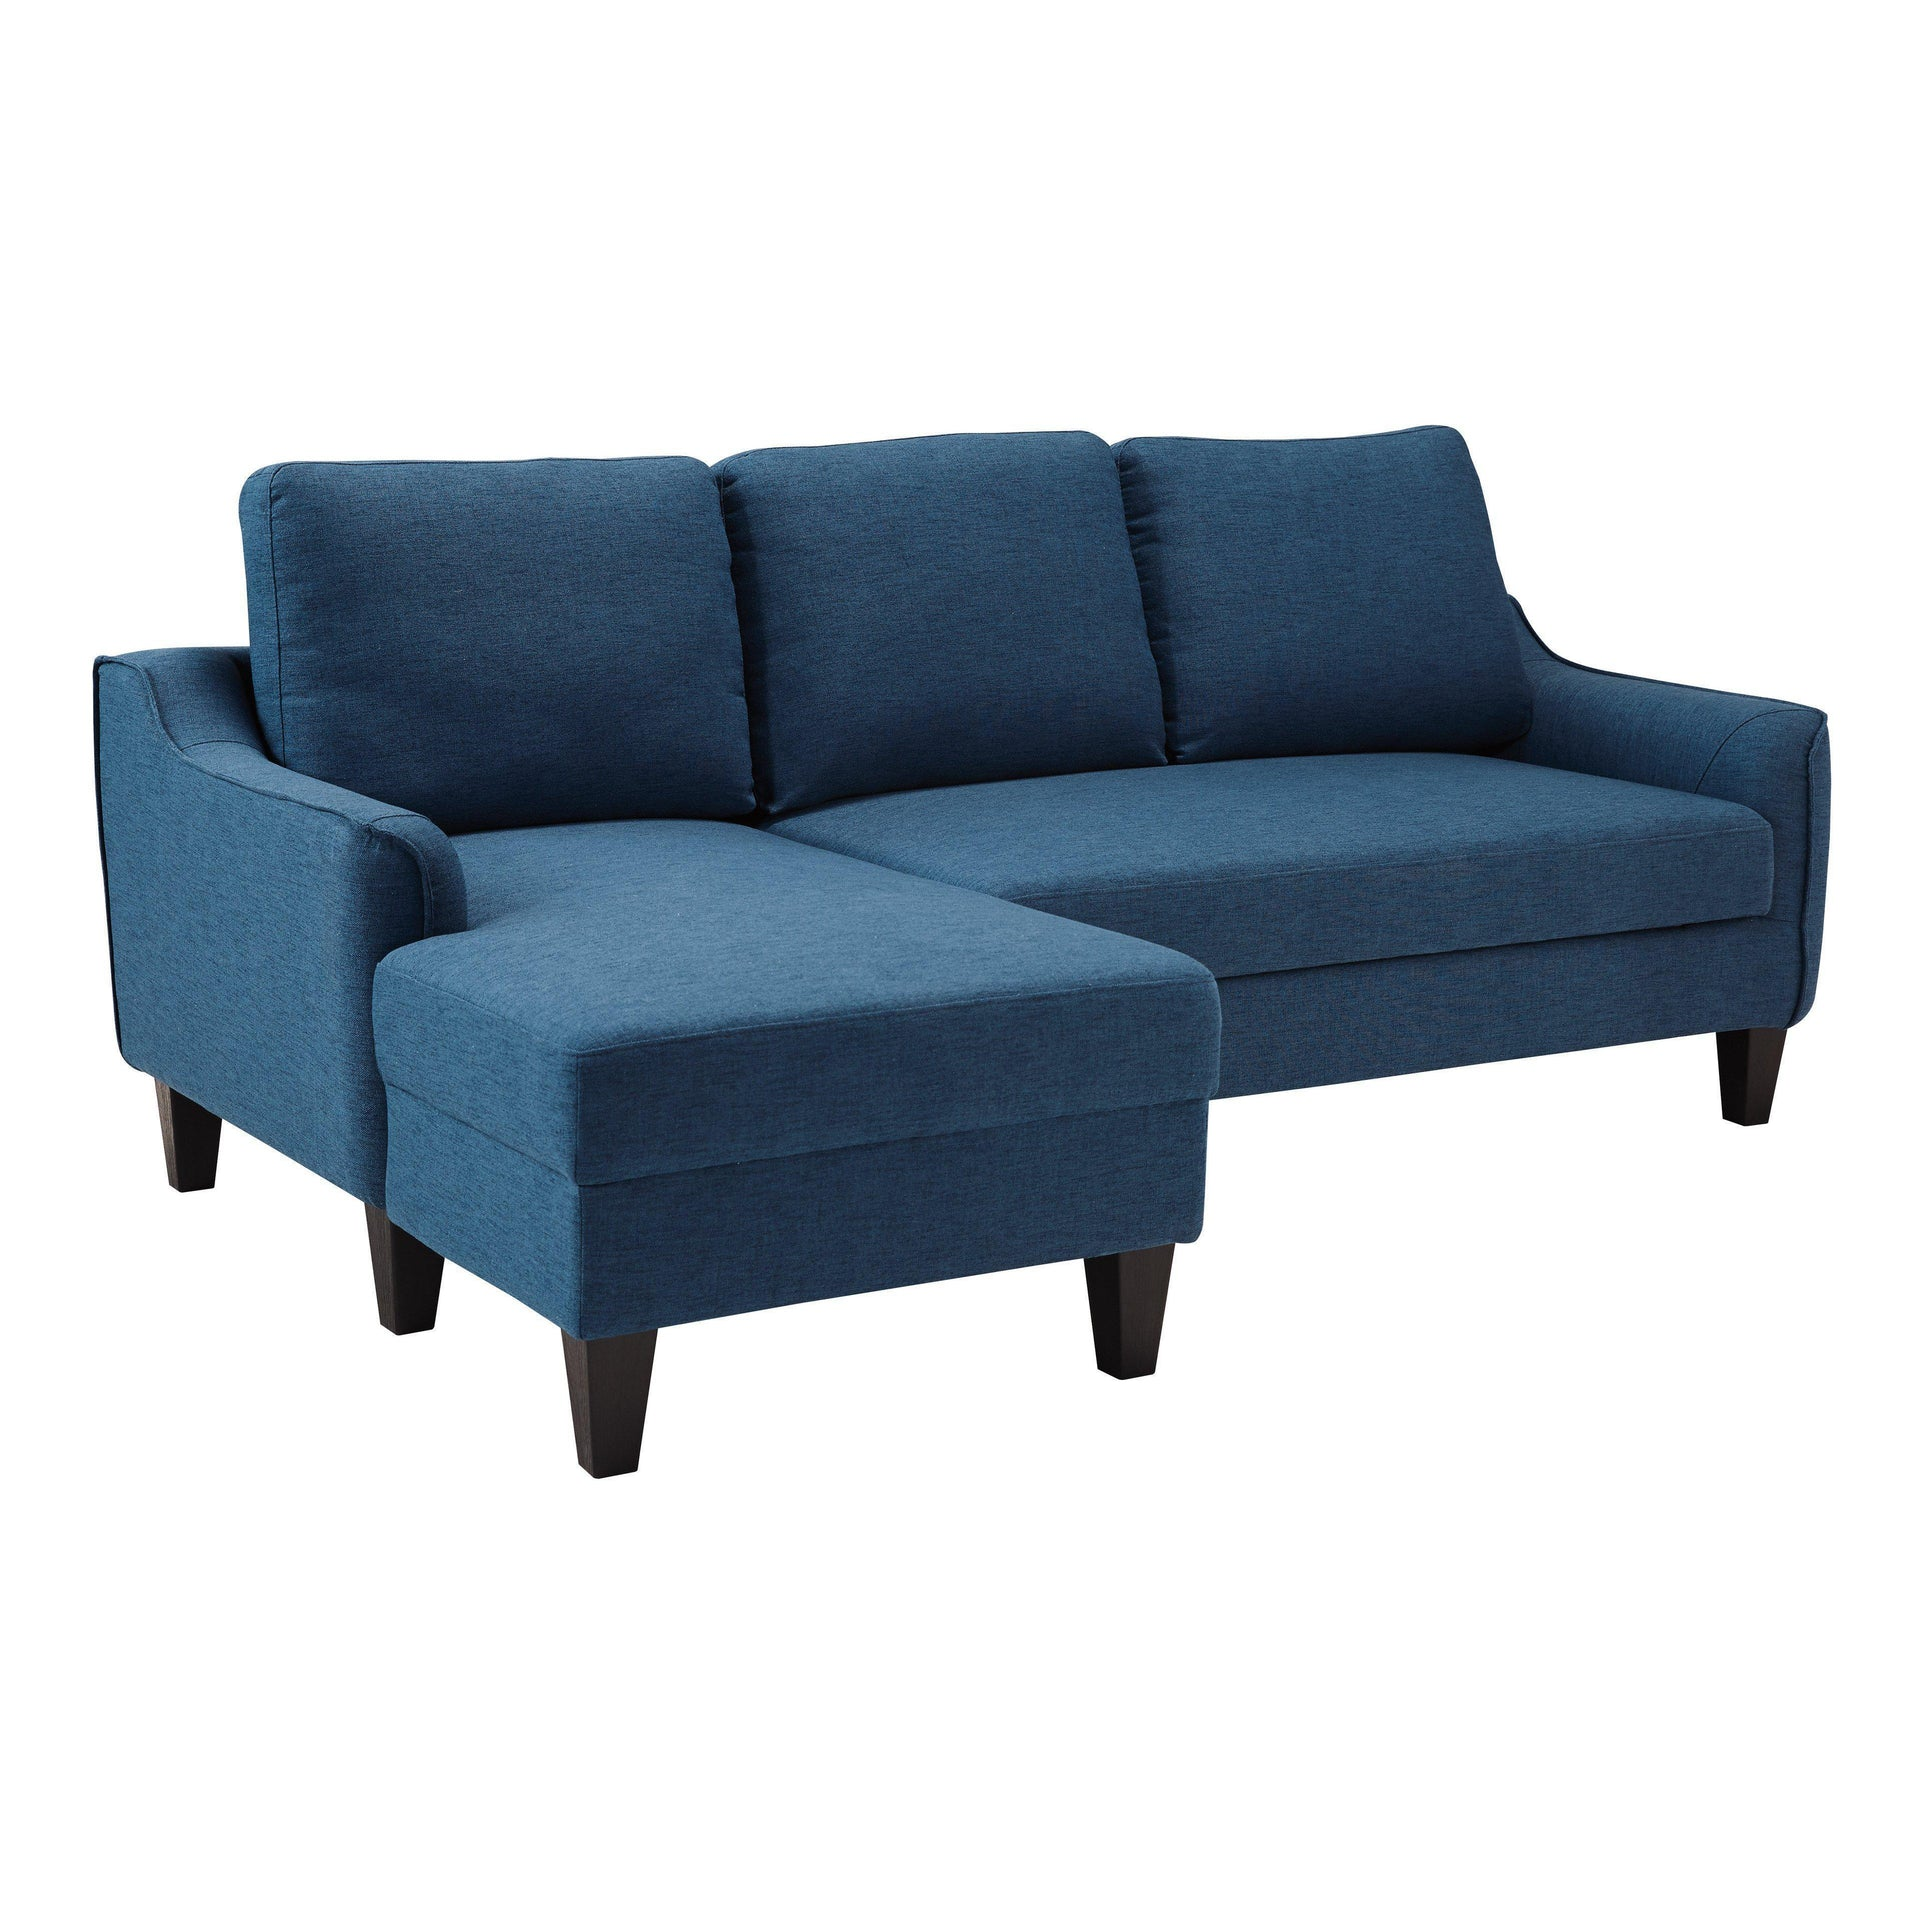 Jarro Sofa Chaise Sleeper